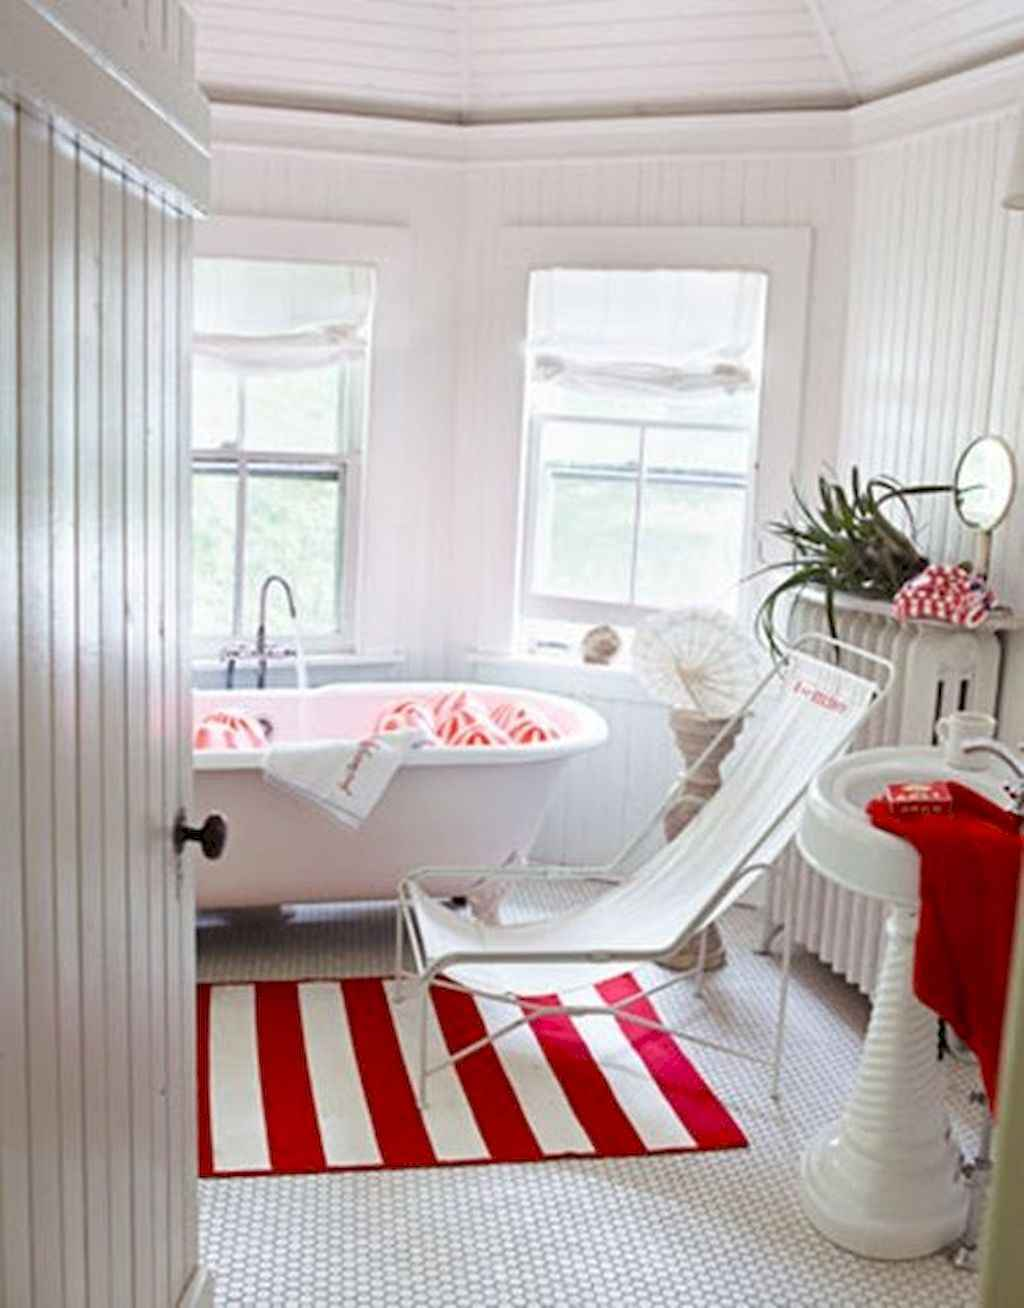 55 cool and relax bathroom design ideas (8)